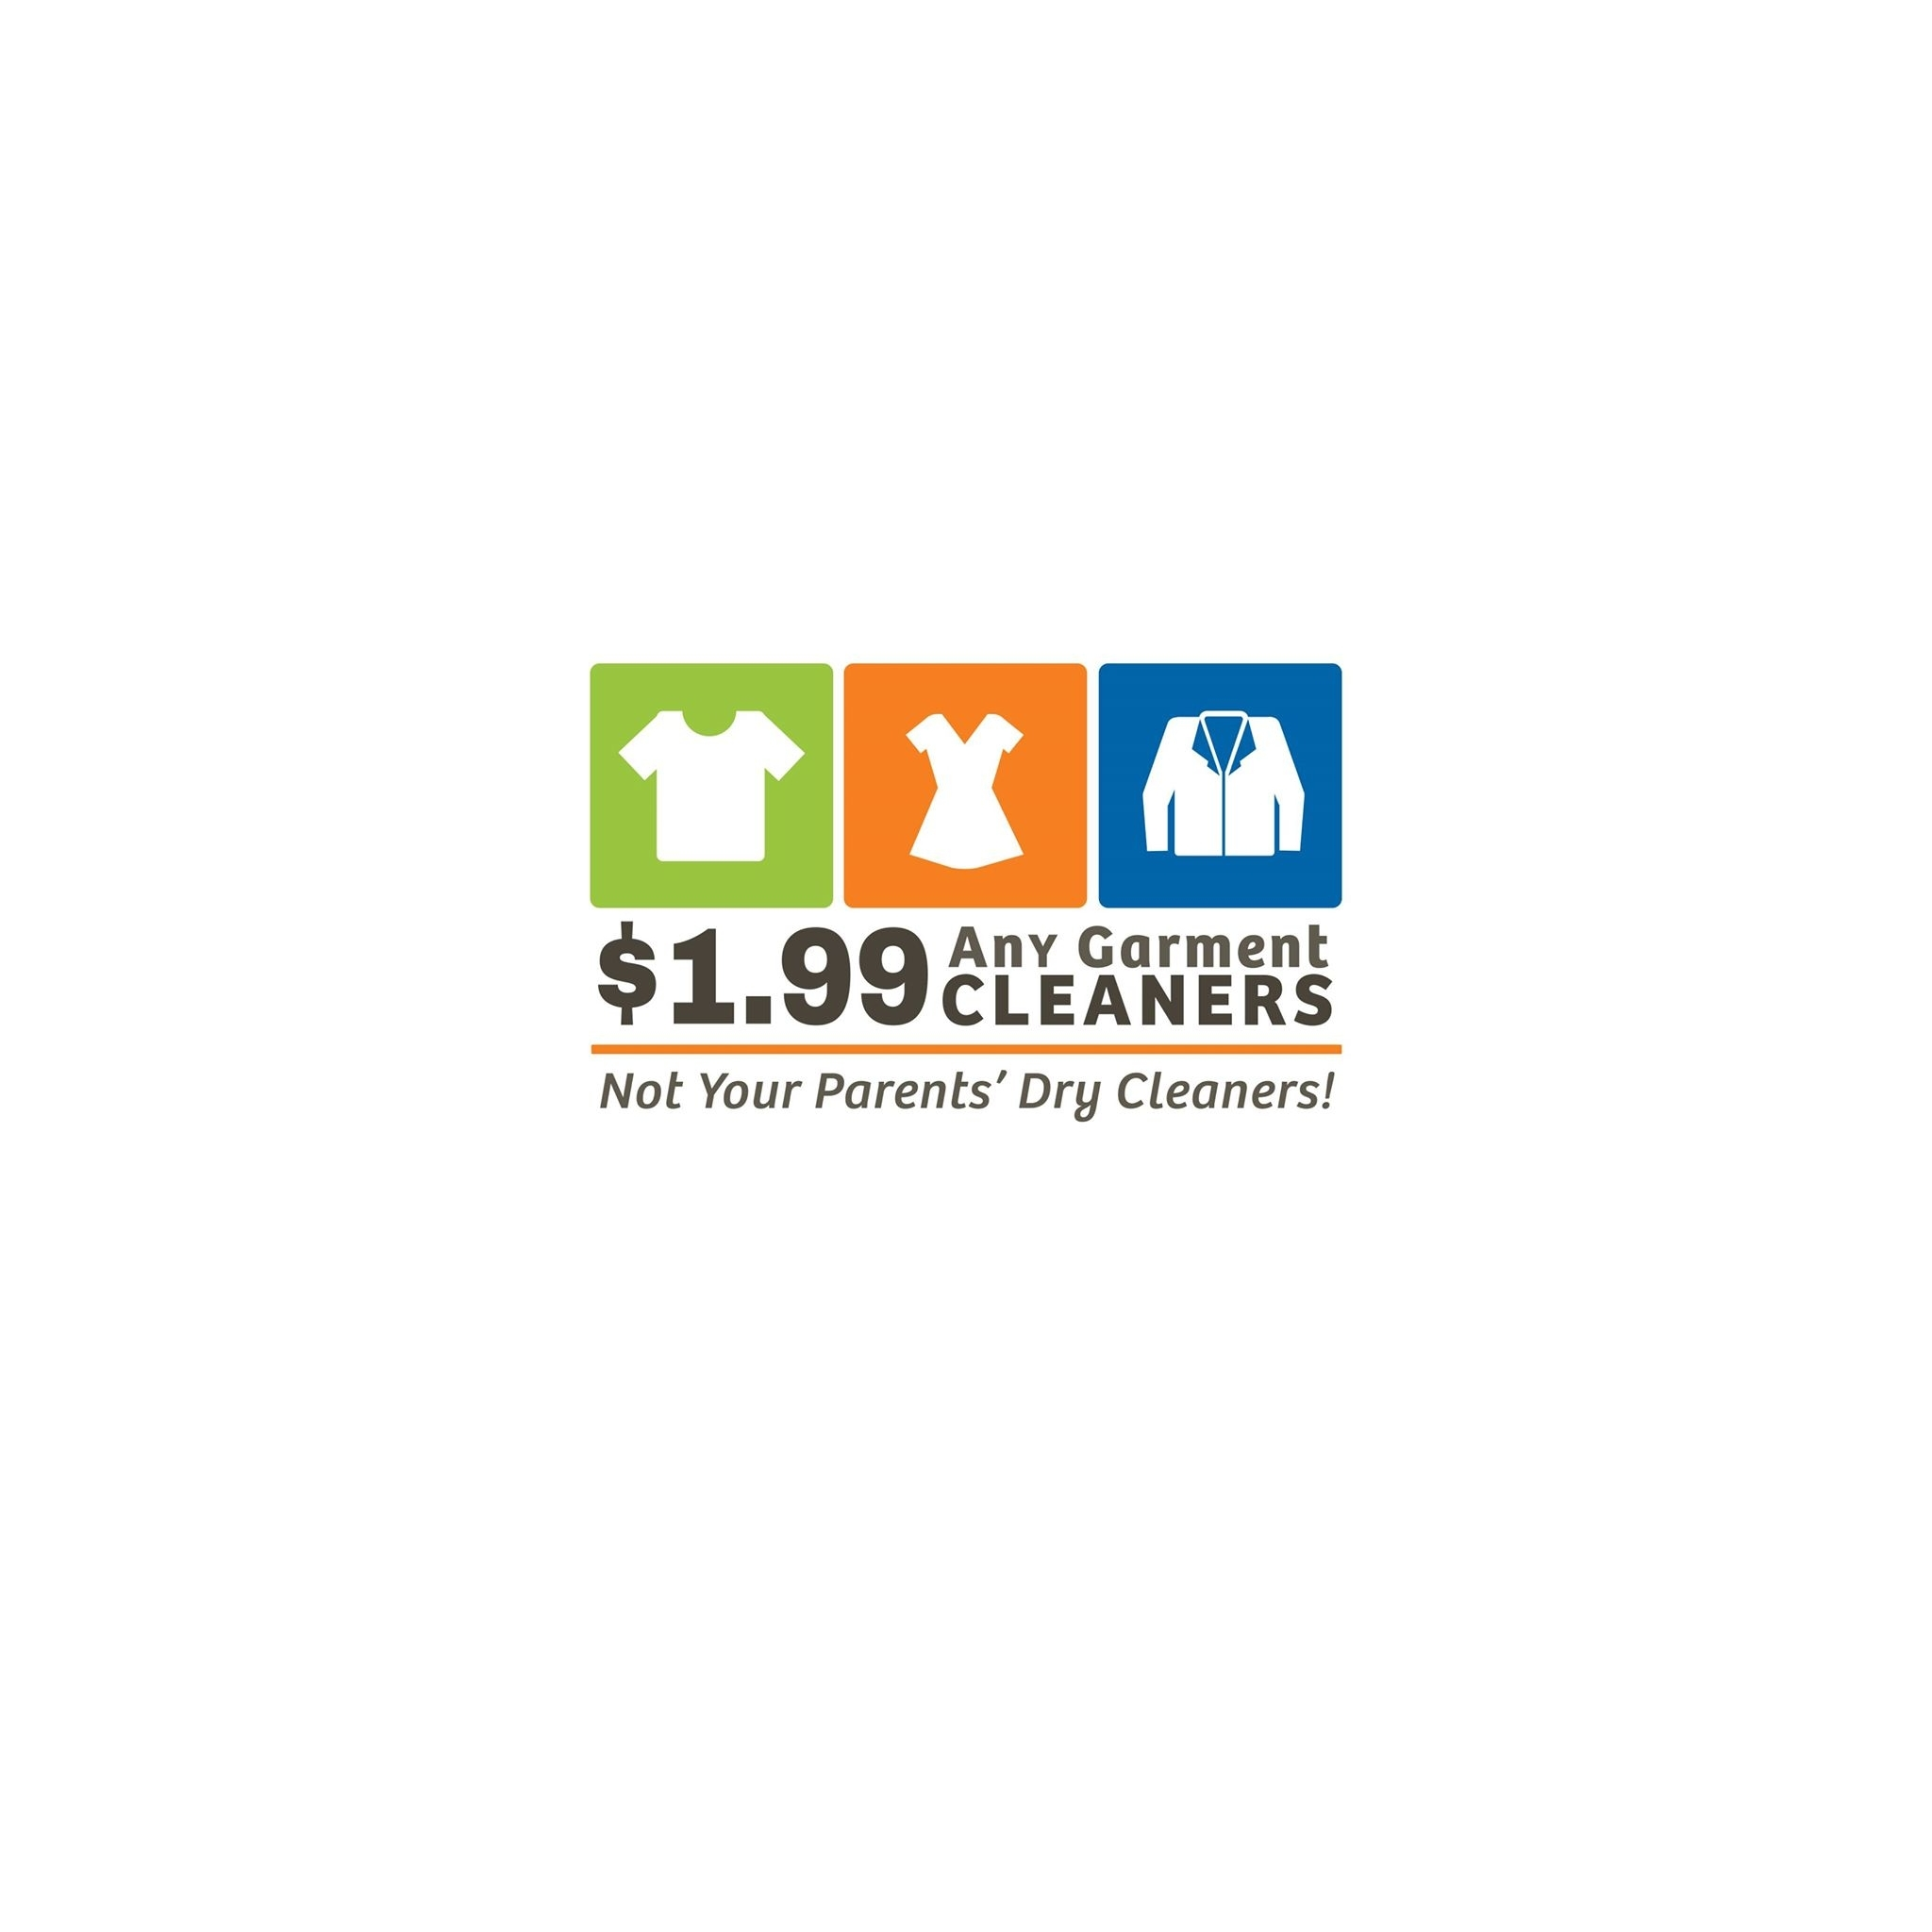 $1.99 Any Garment Cleaners